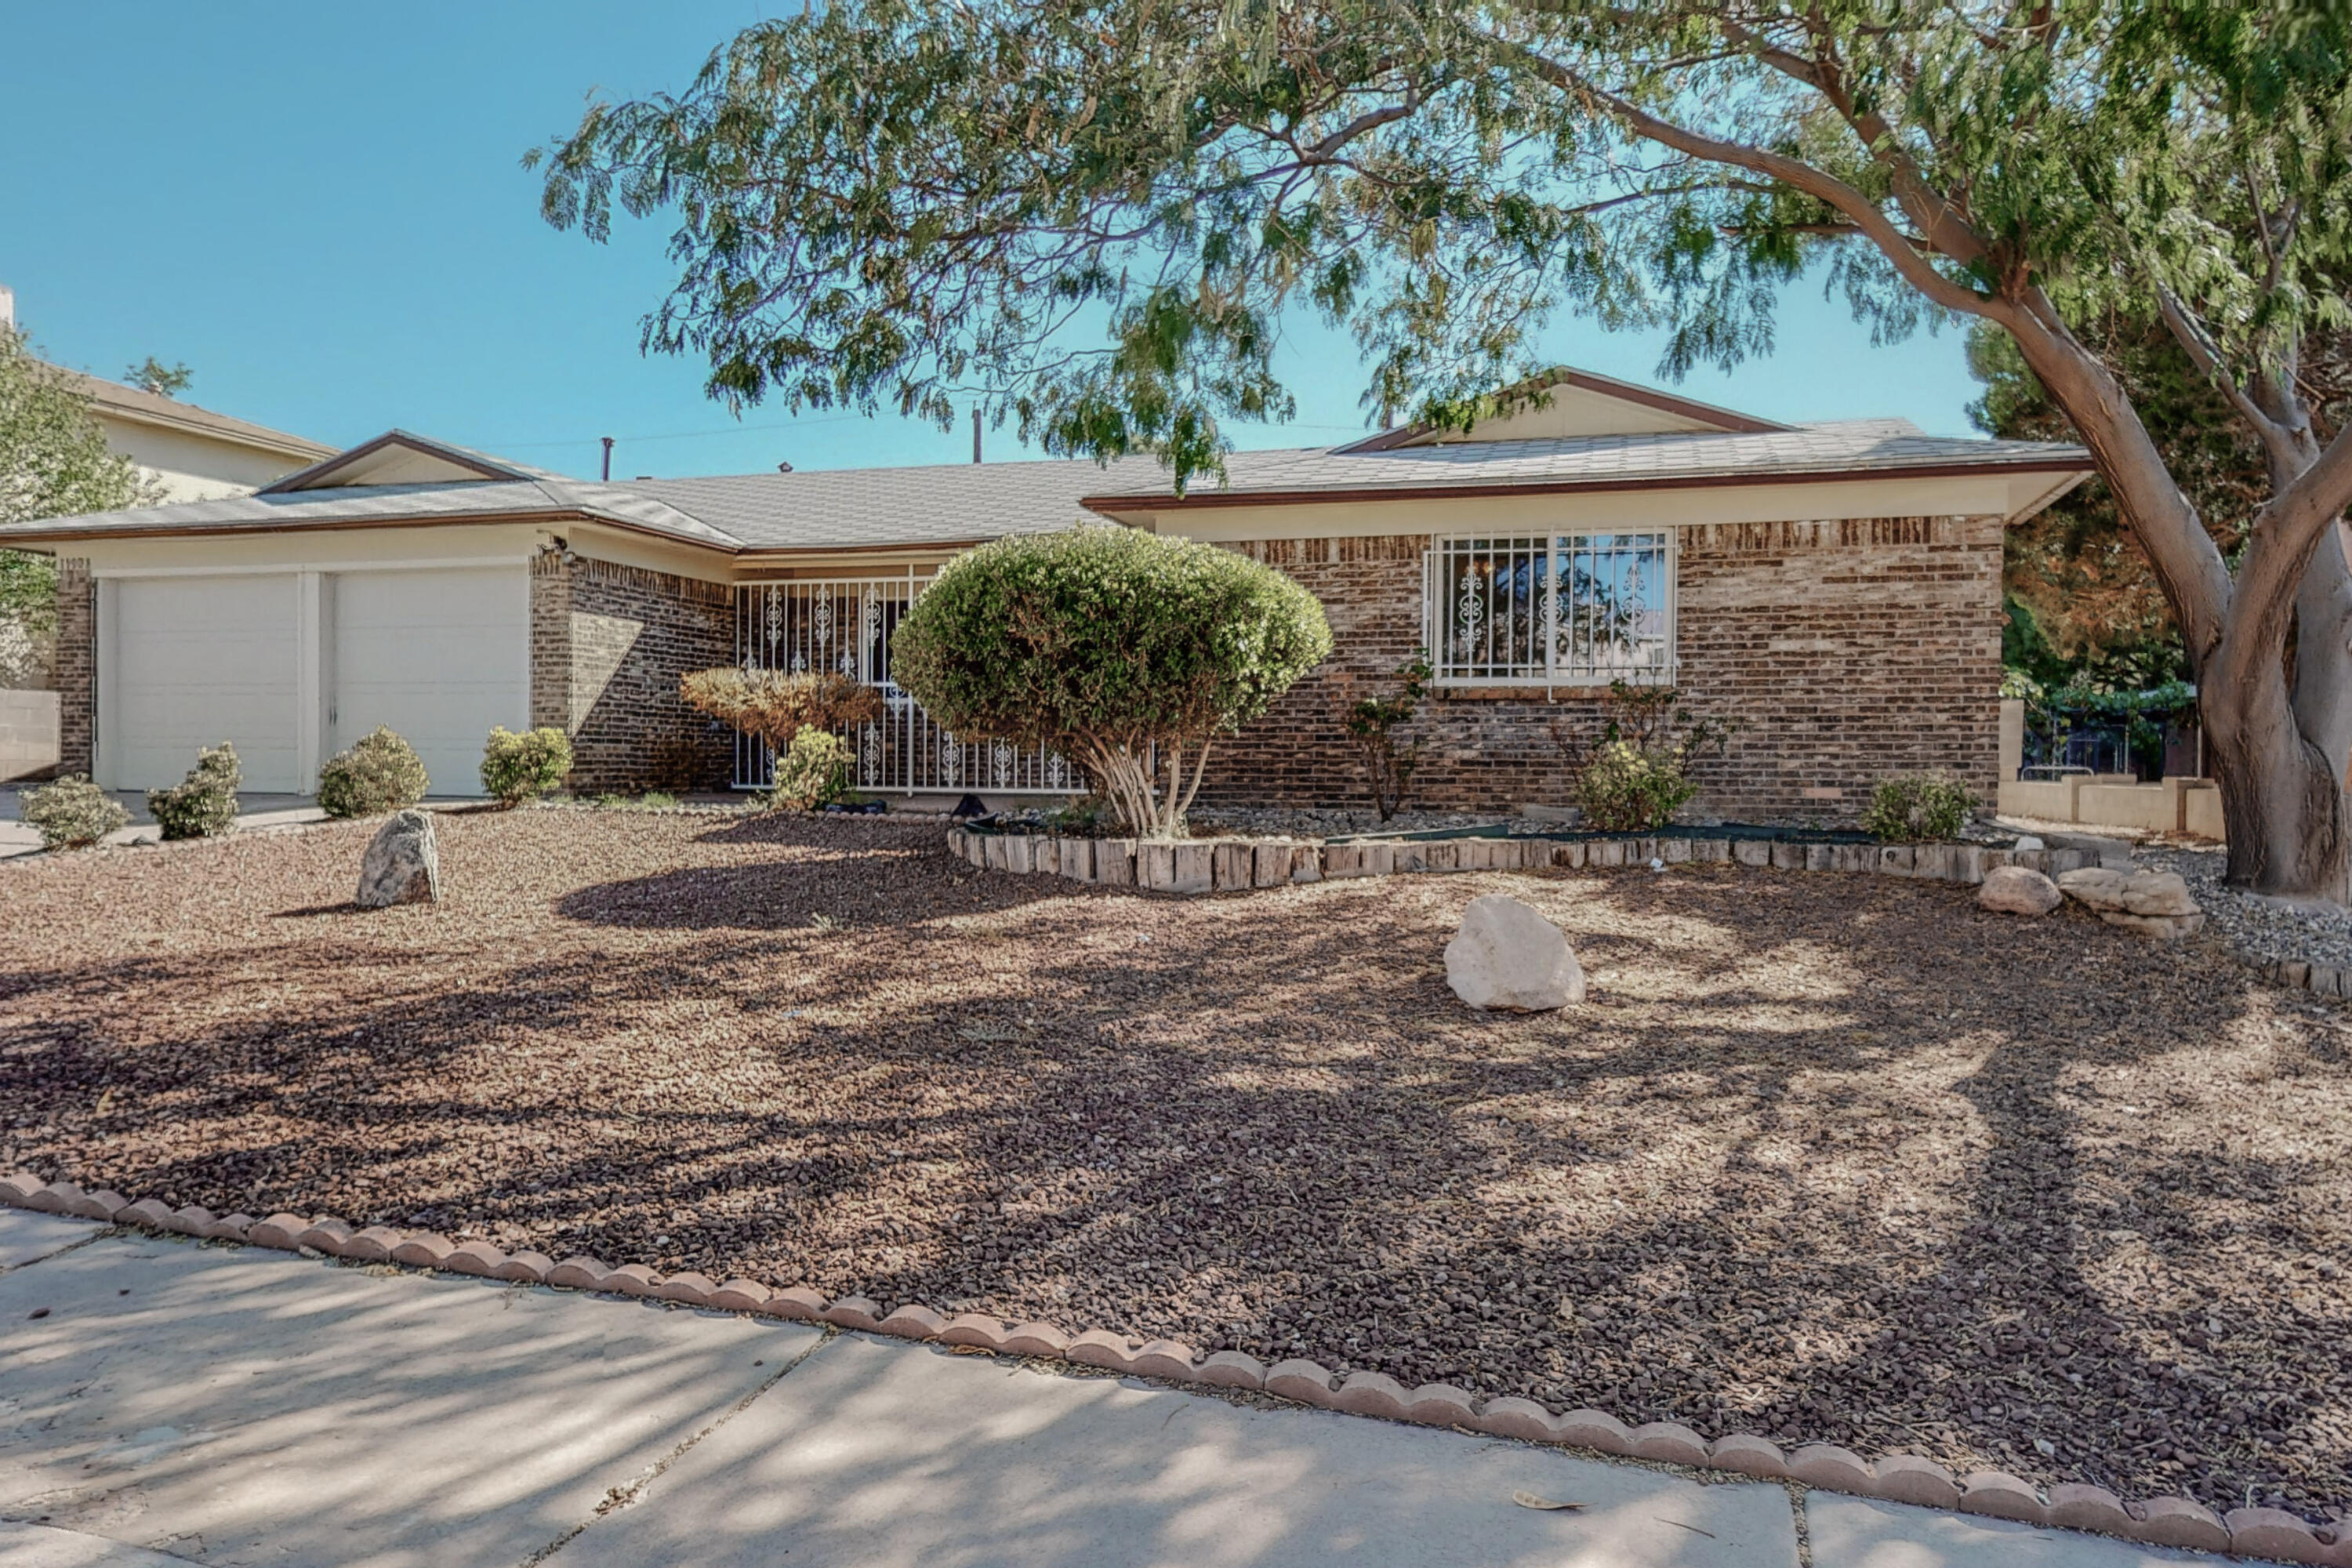 Turn key ready for new owners!!!  Closing to shopping and schools, this home has been updated with new flooring through out, new paint, new kitchen, heated and cooled bonus sunroom, and much more.  Schedule you showing today.